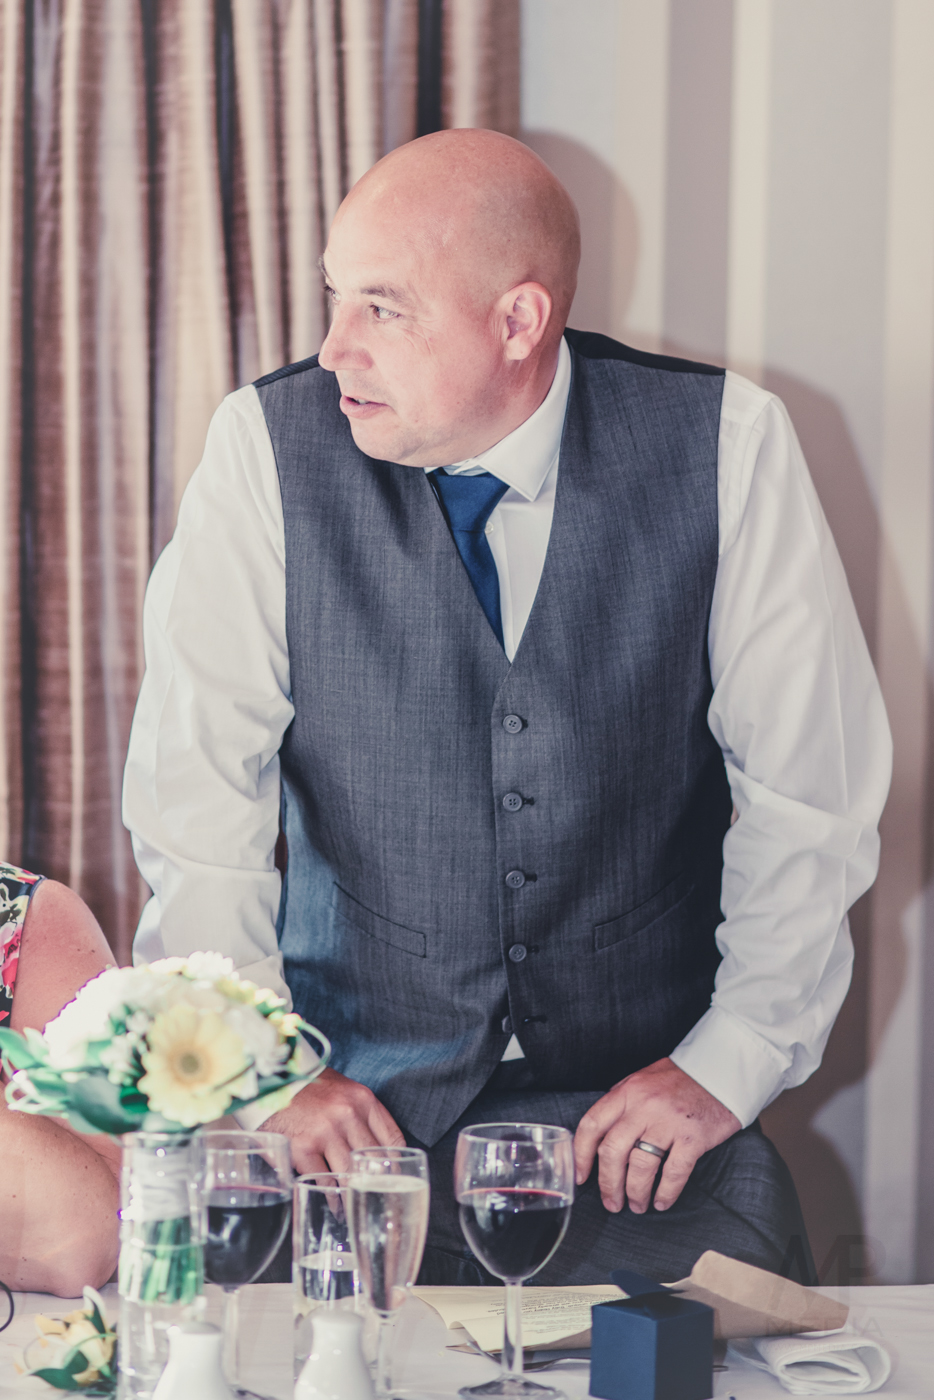 516 - Chris and Natalies Wedding (MAIN) - DO NOT SHARE THIS IMAGES ONLINE -4750.JPG